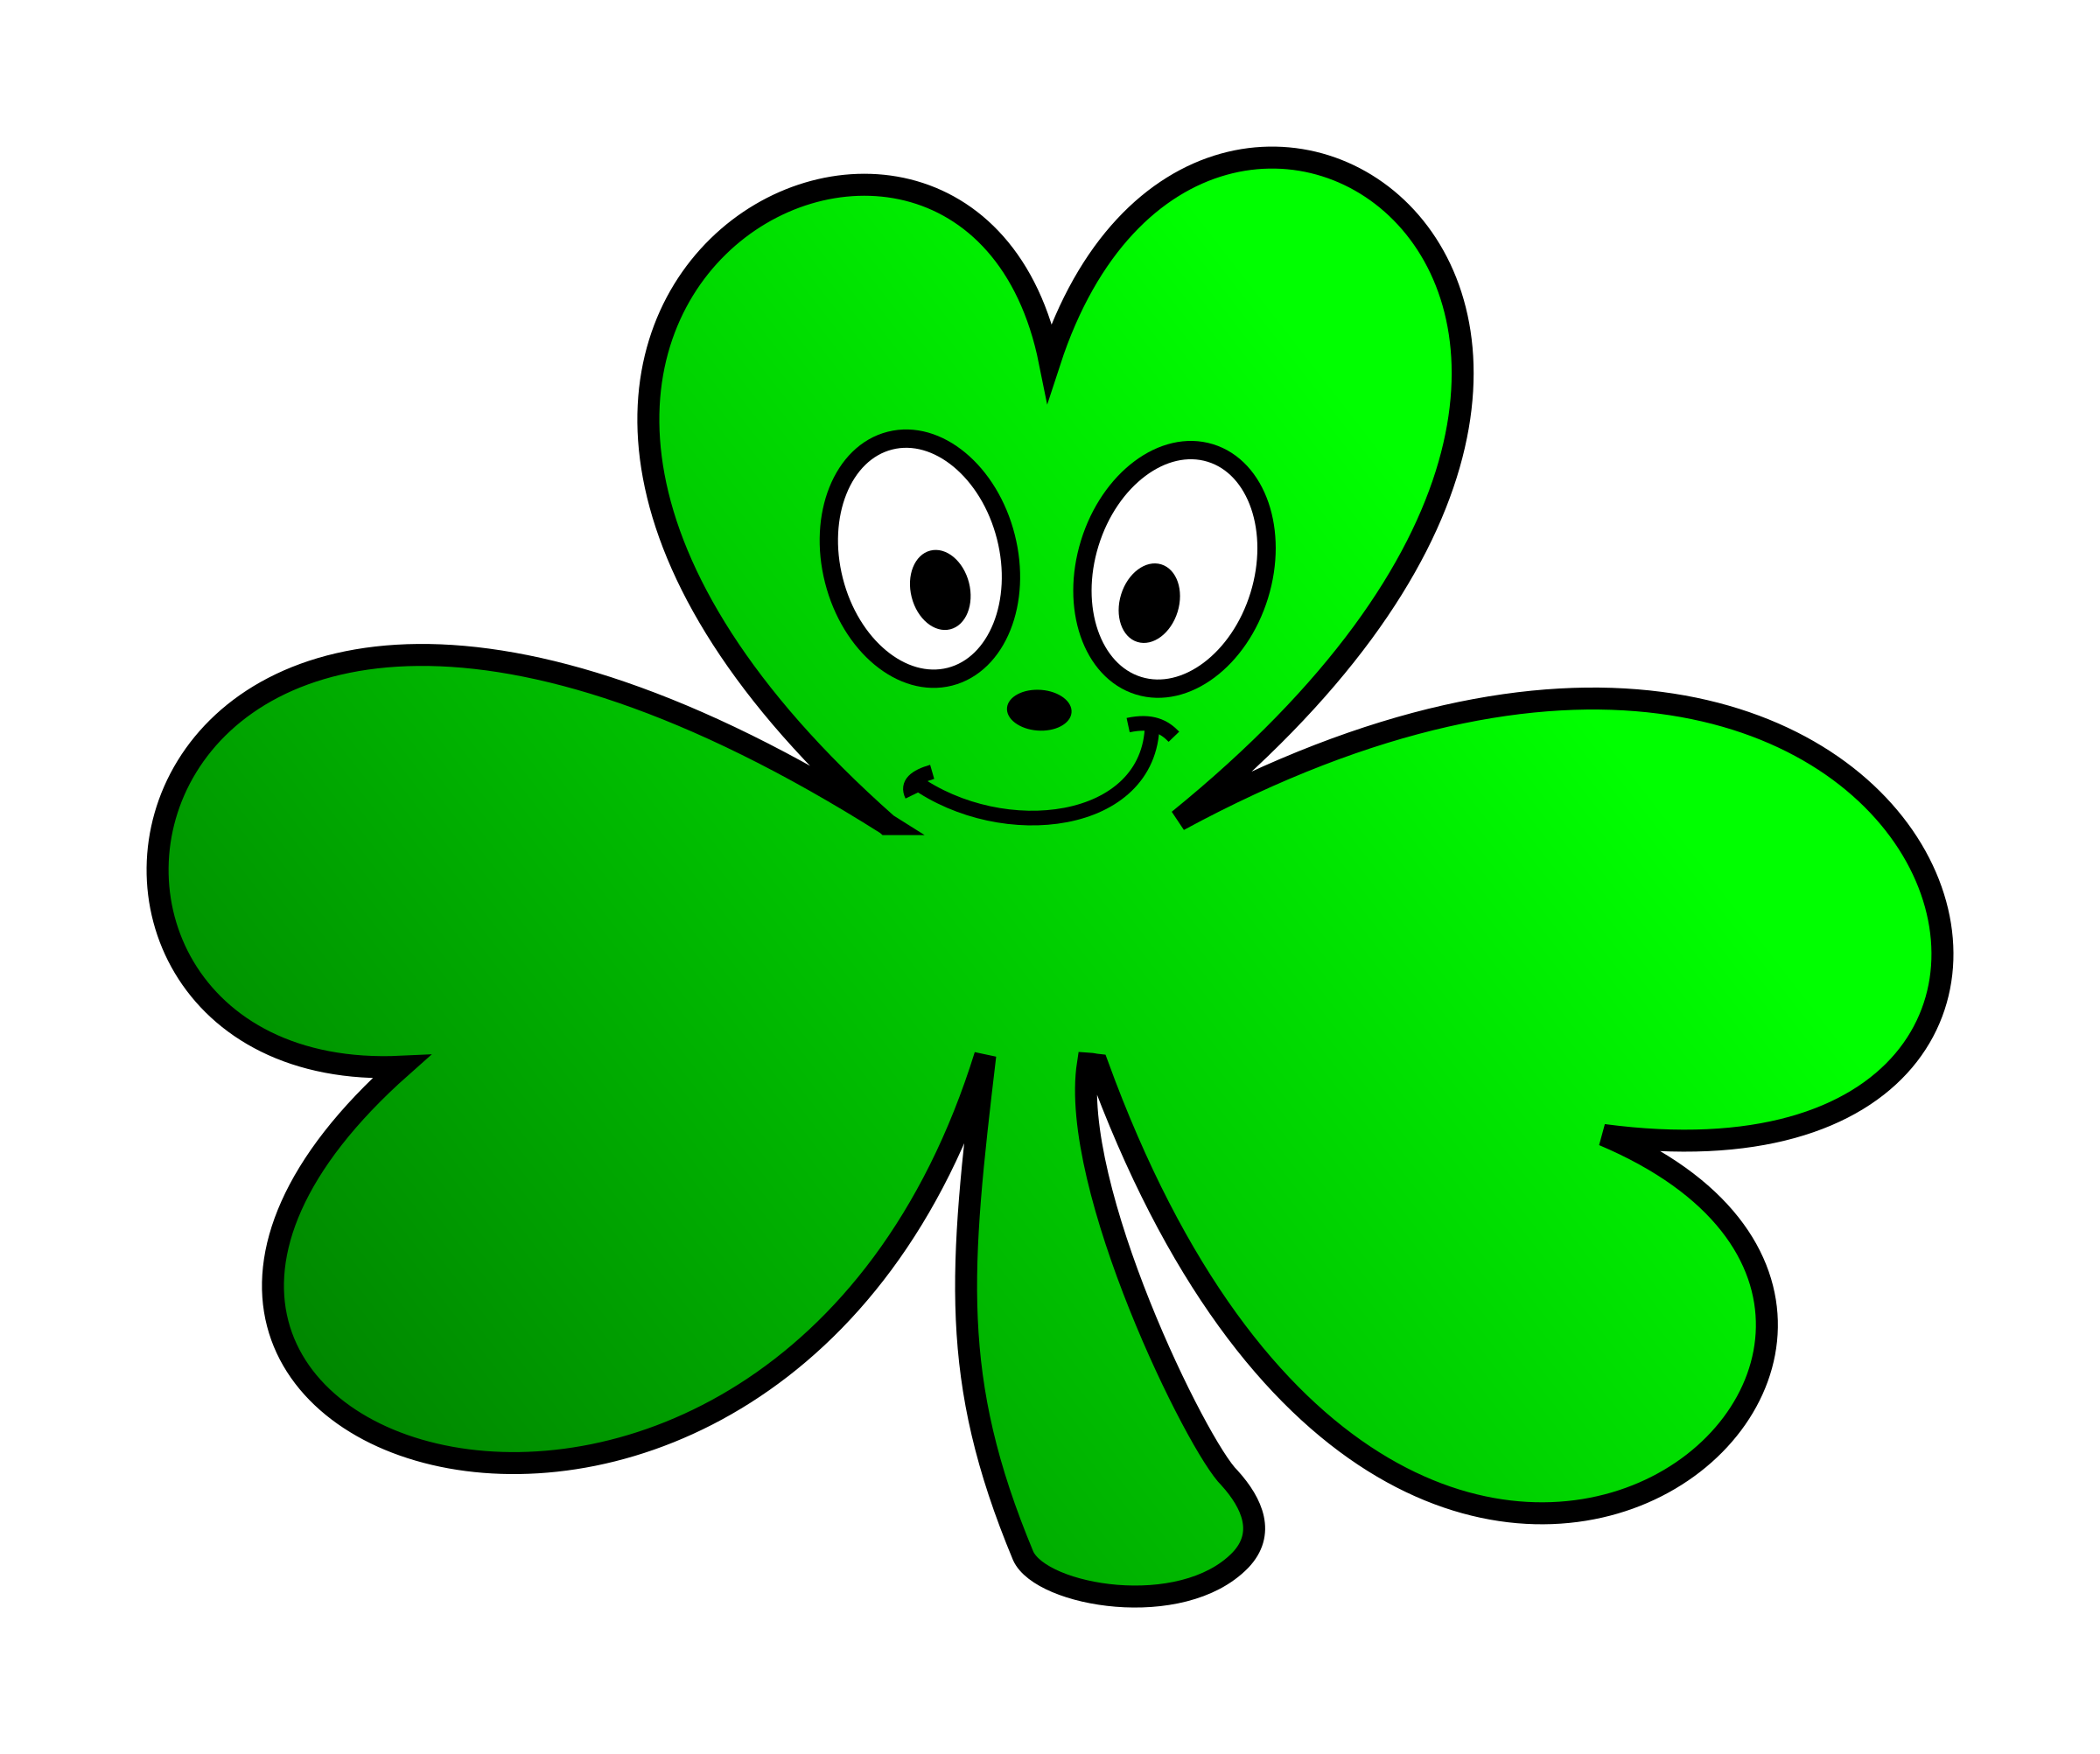 Green Shamrock Cartoon Face by KAMC